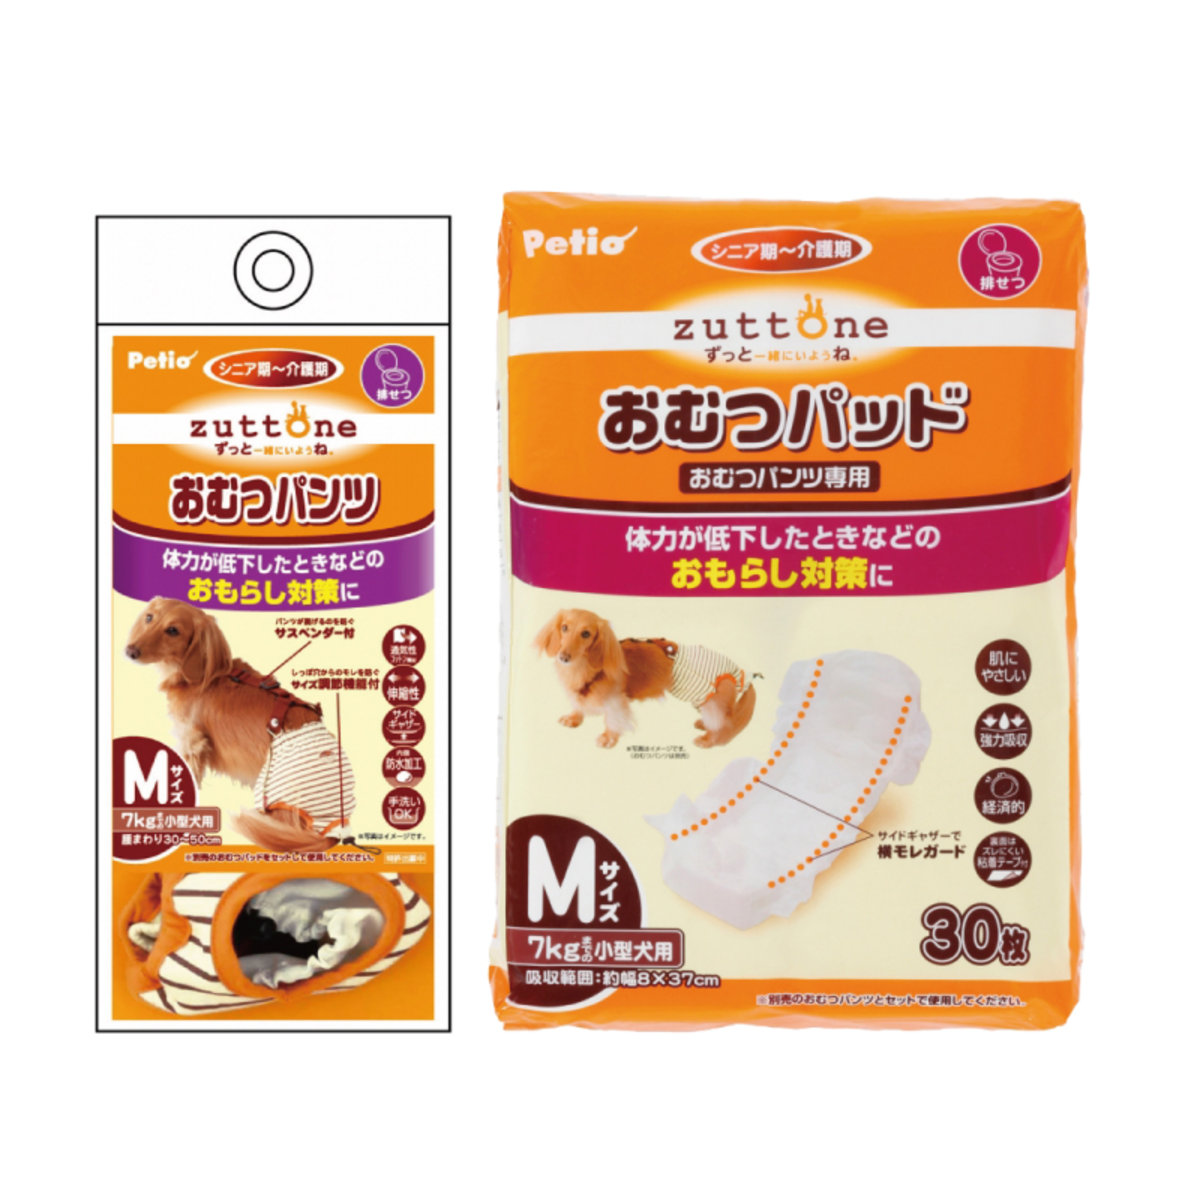 Senior Diaper Set M (For Dog) (W23633 + W23641)